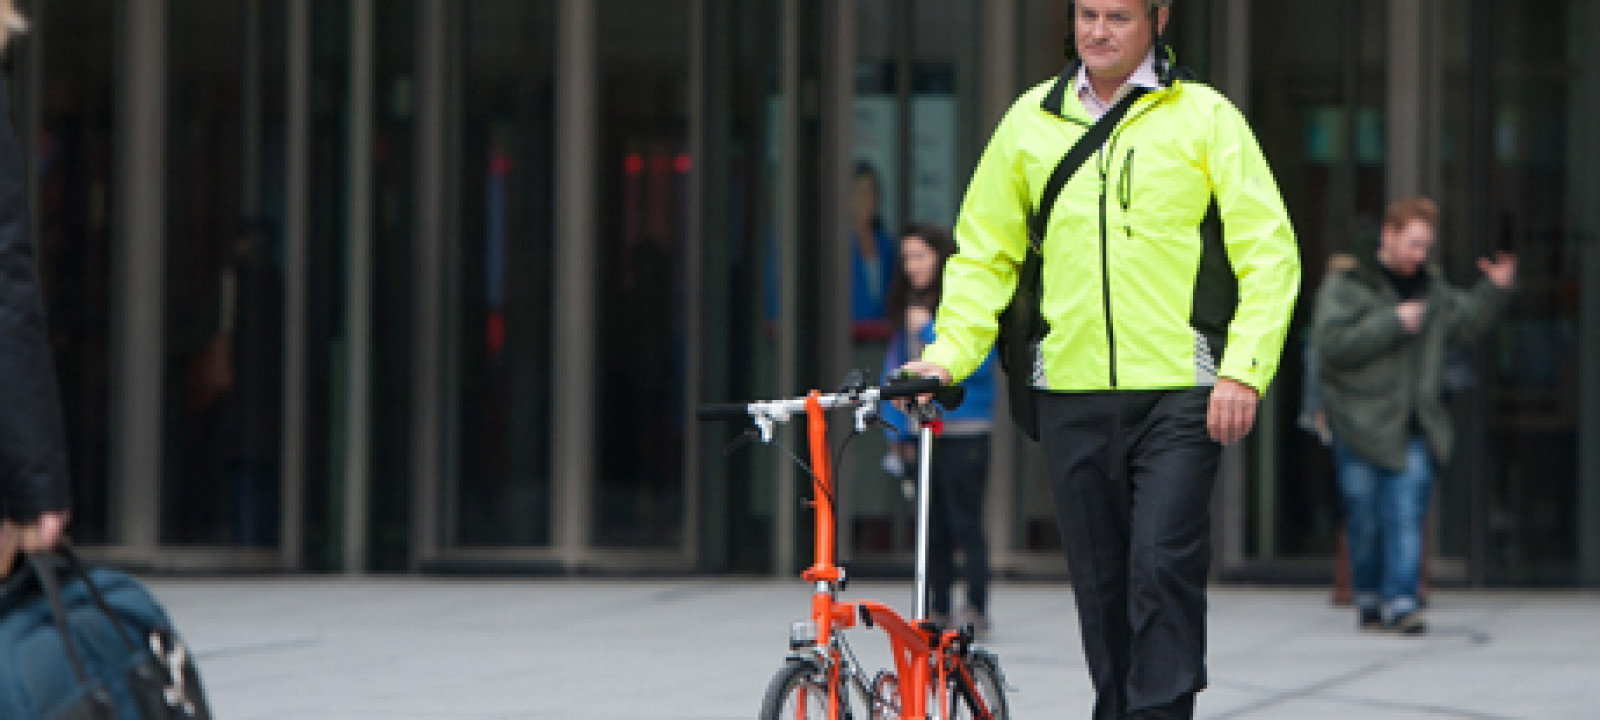 Hugh Bonneville cycling through courtyard at BBC studios, London